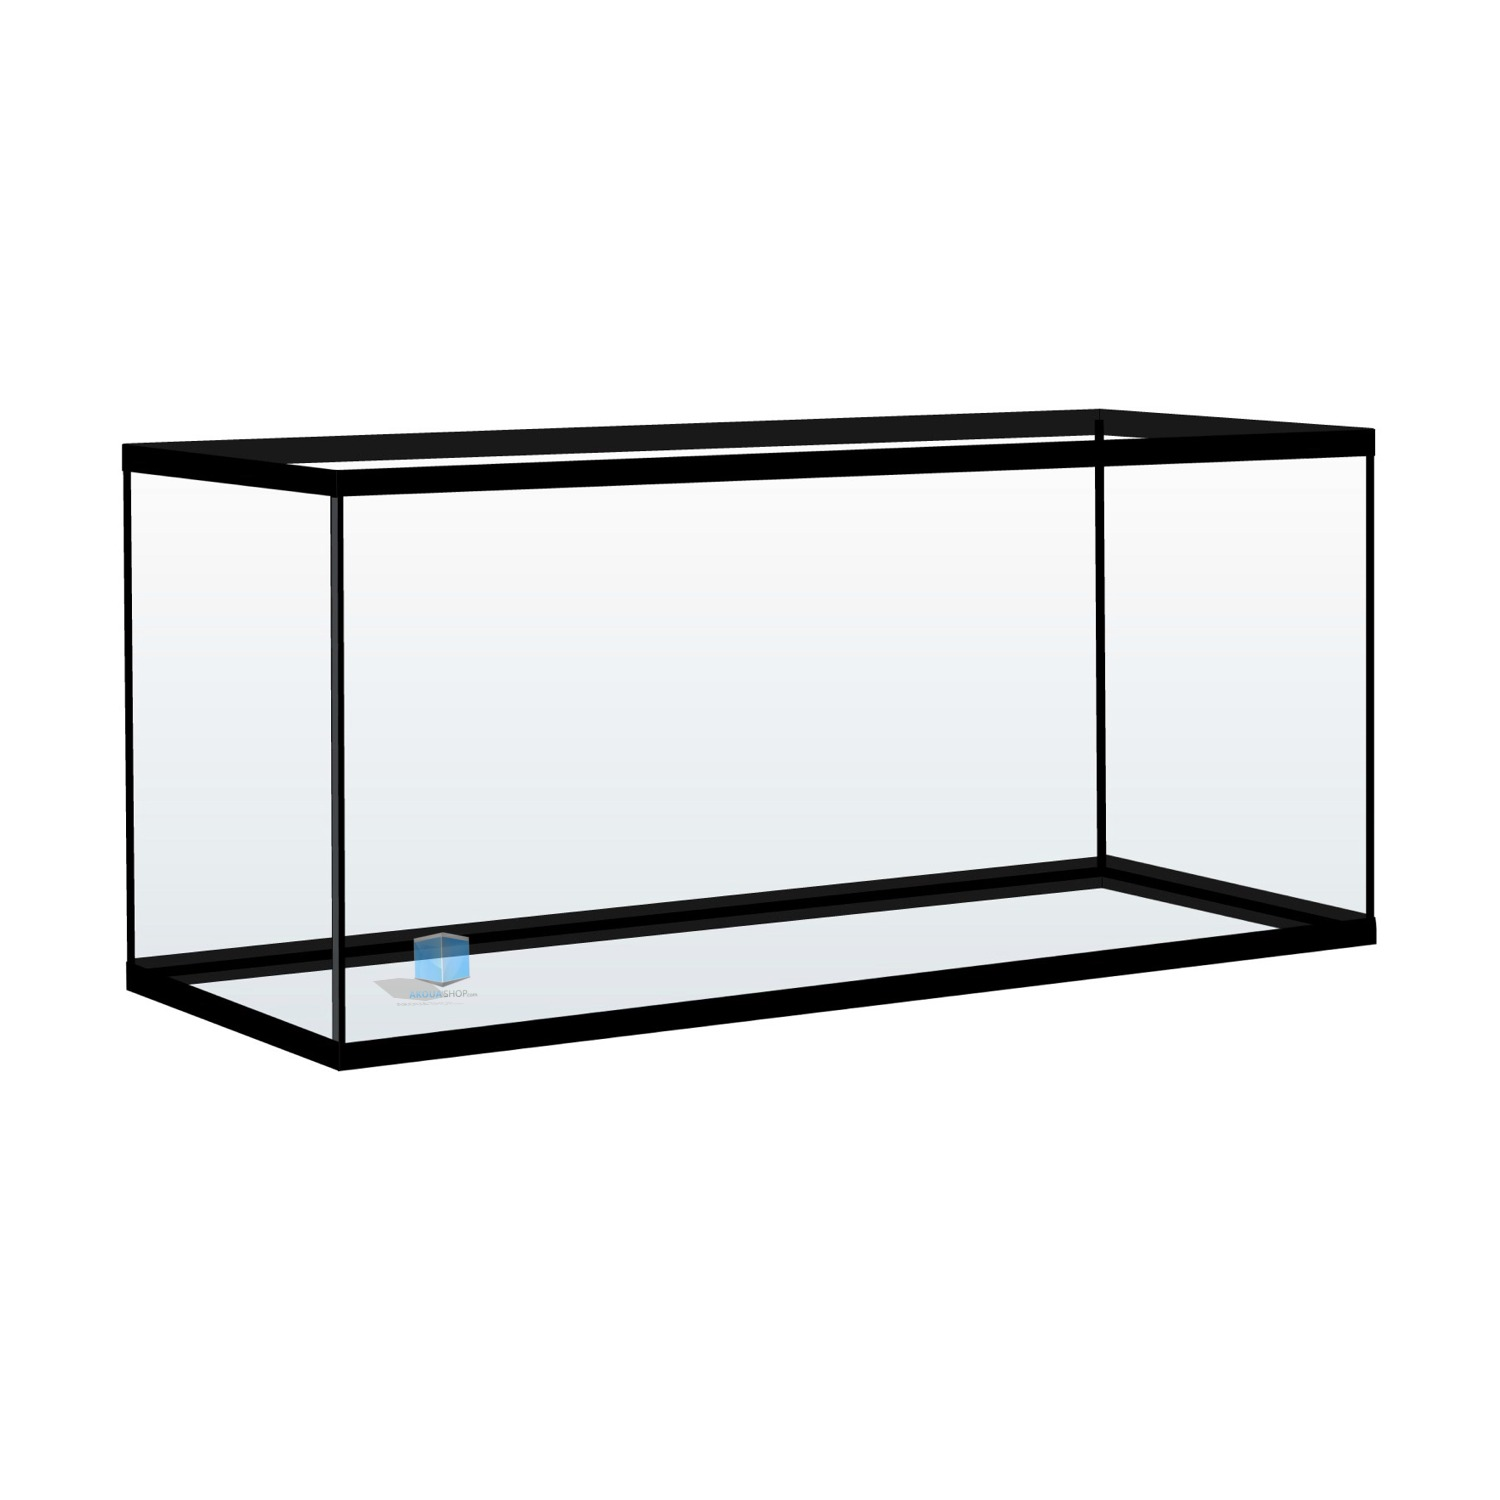 cuve d 39 aquarium nue 96l dim 80 x 30 x 40 cm en vente sur la boutique. Black Bedroom Furniture Sets. Home Design Ideas